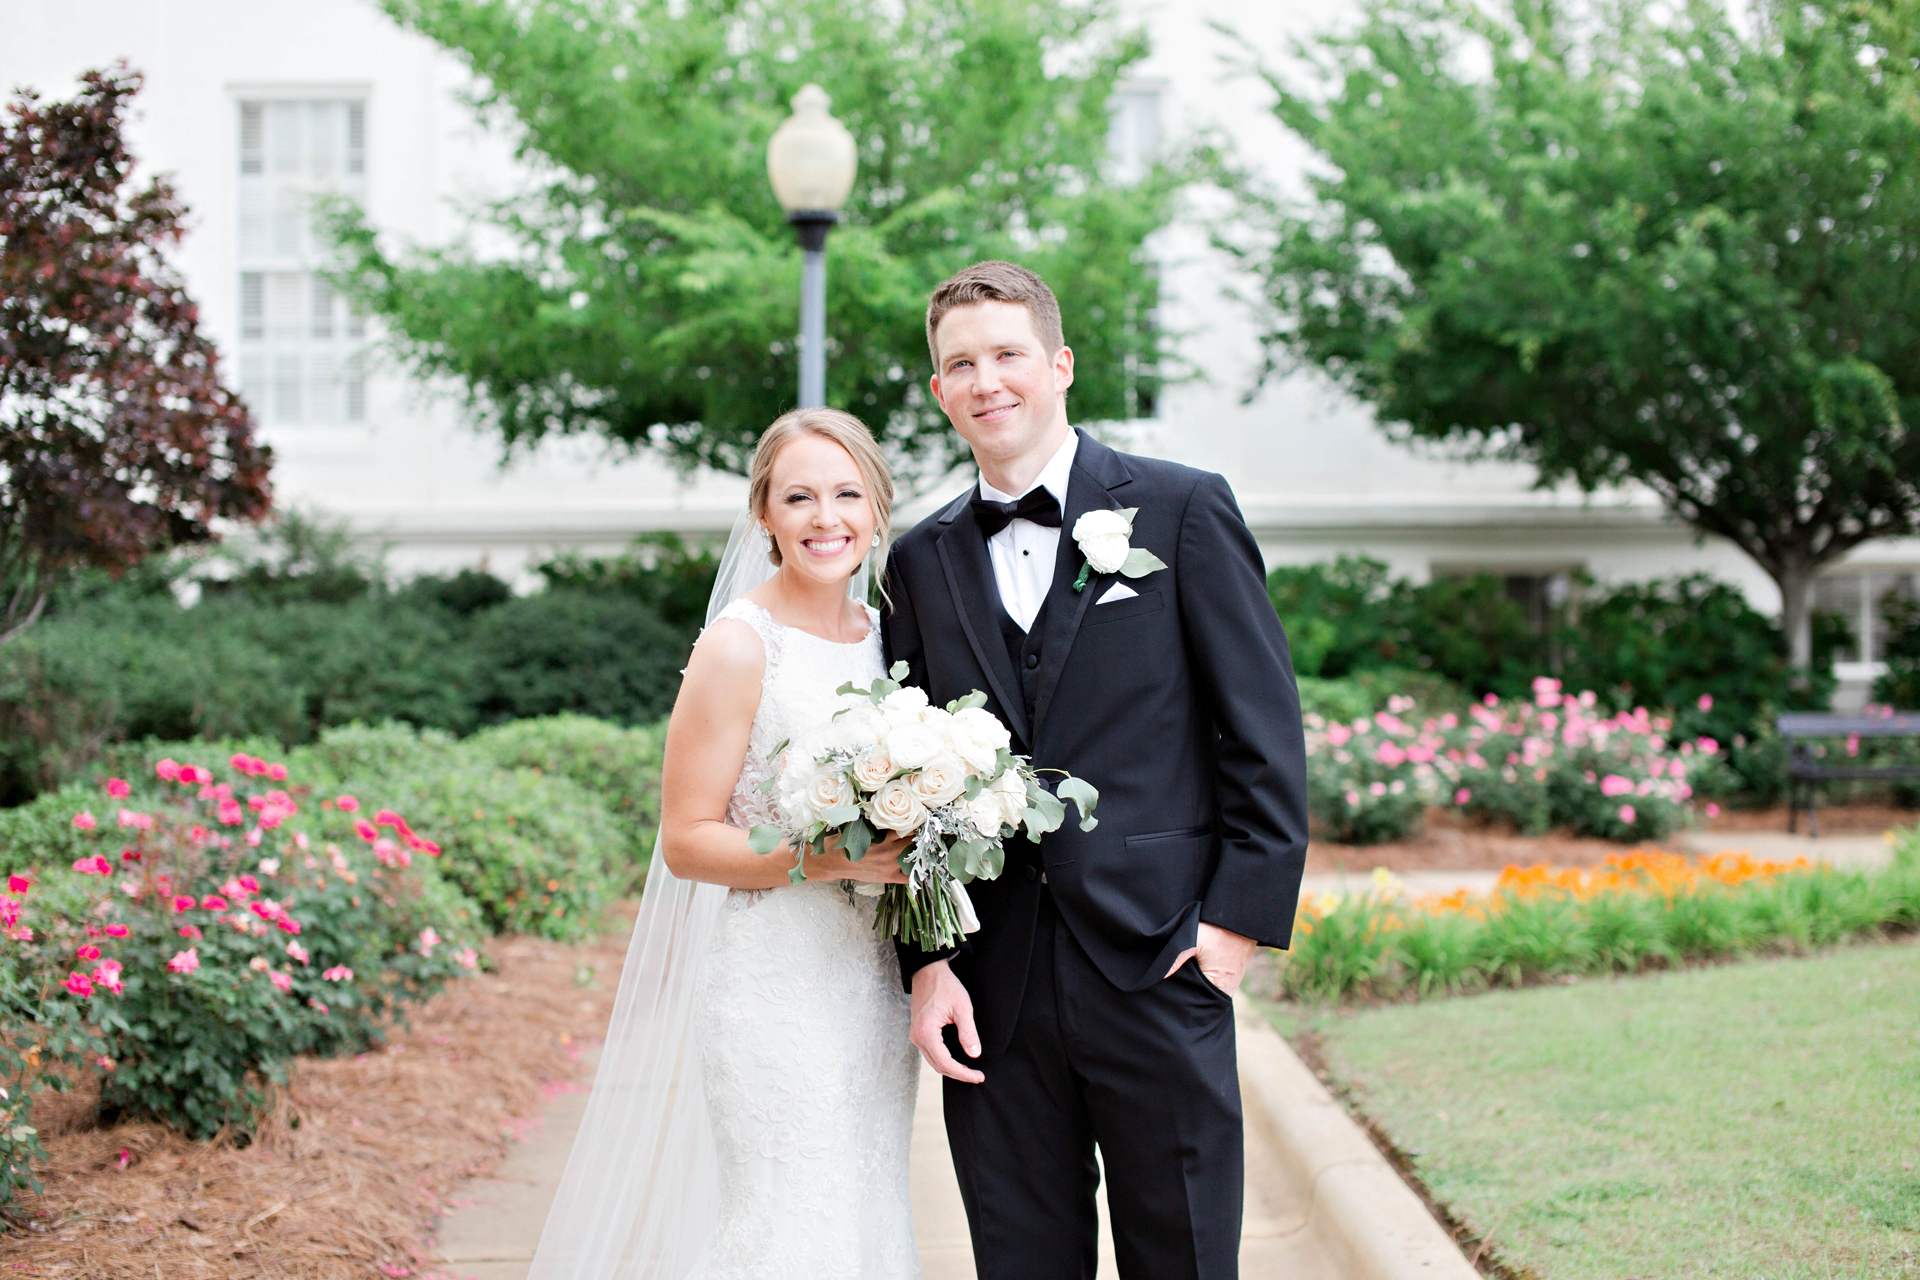 Alabama-Wedding-Photographers-Montgomery-Matty-Drollette-136.jpg